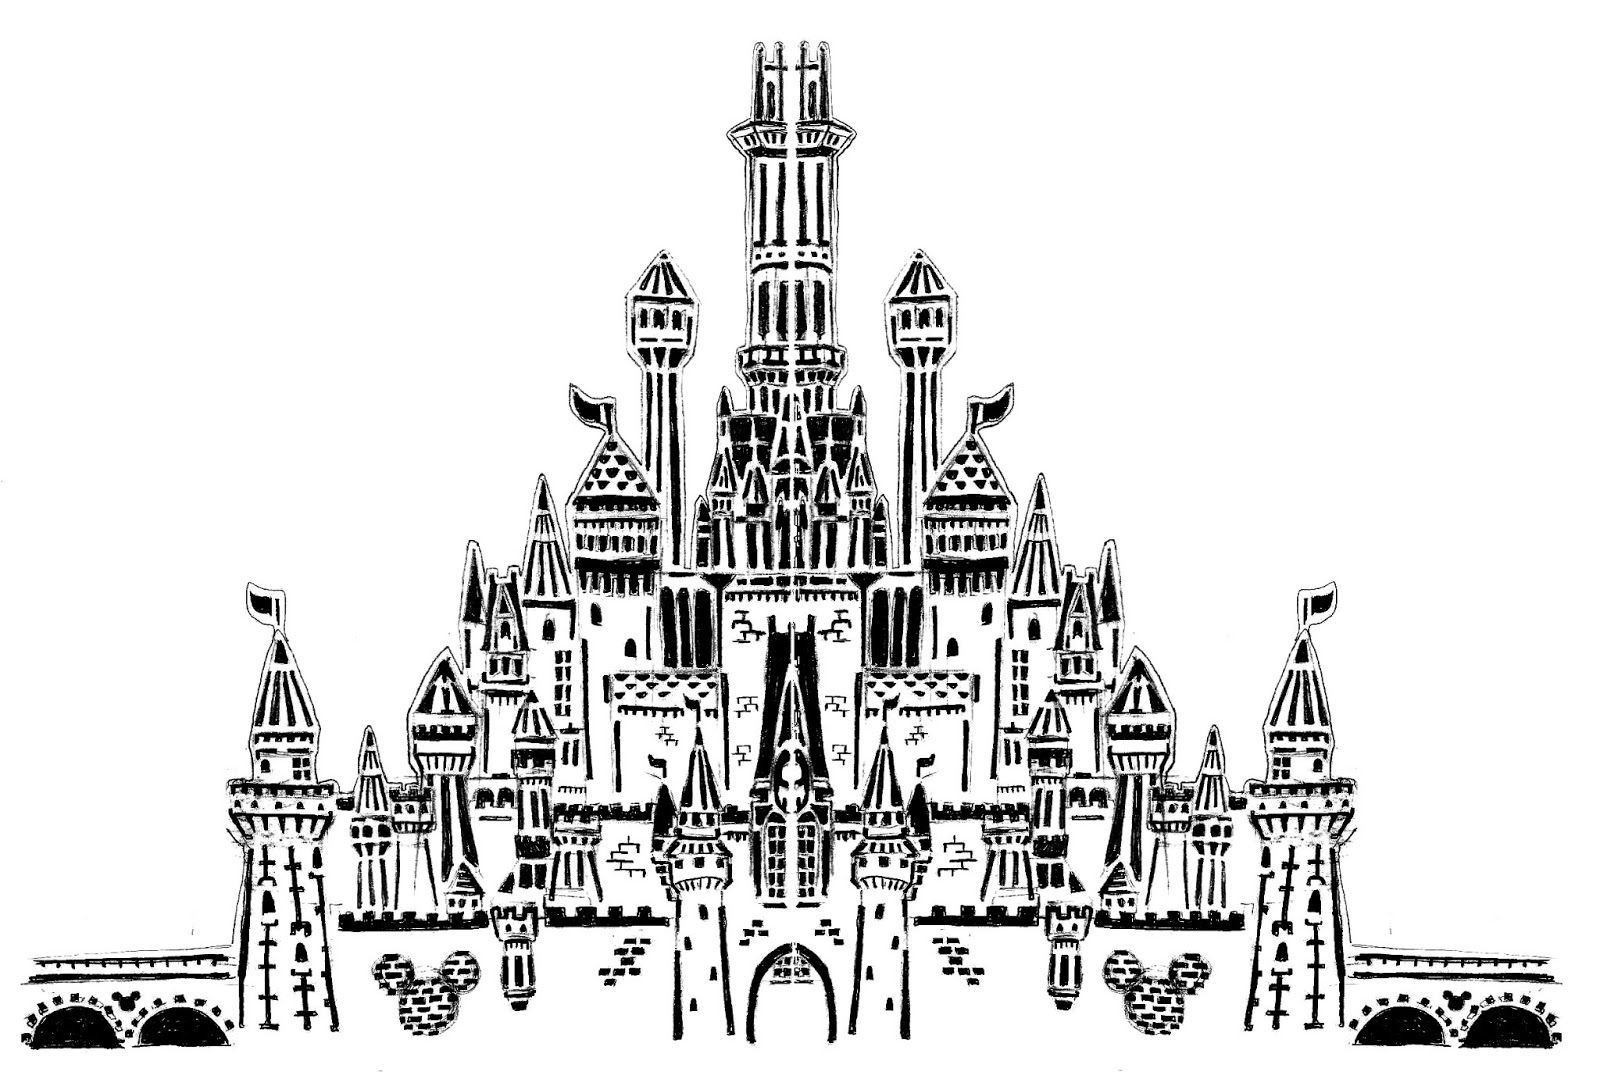 Disney Castle Black And White Drawing Replaced by a completed castleDisney Castle Black And White